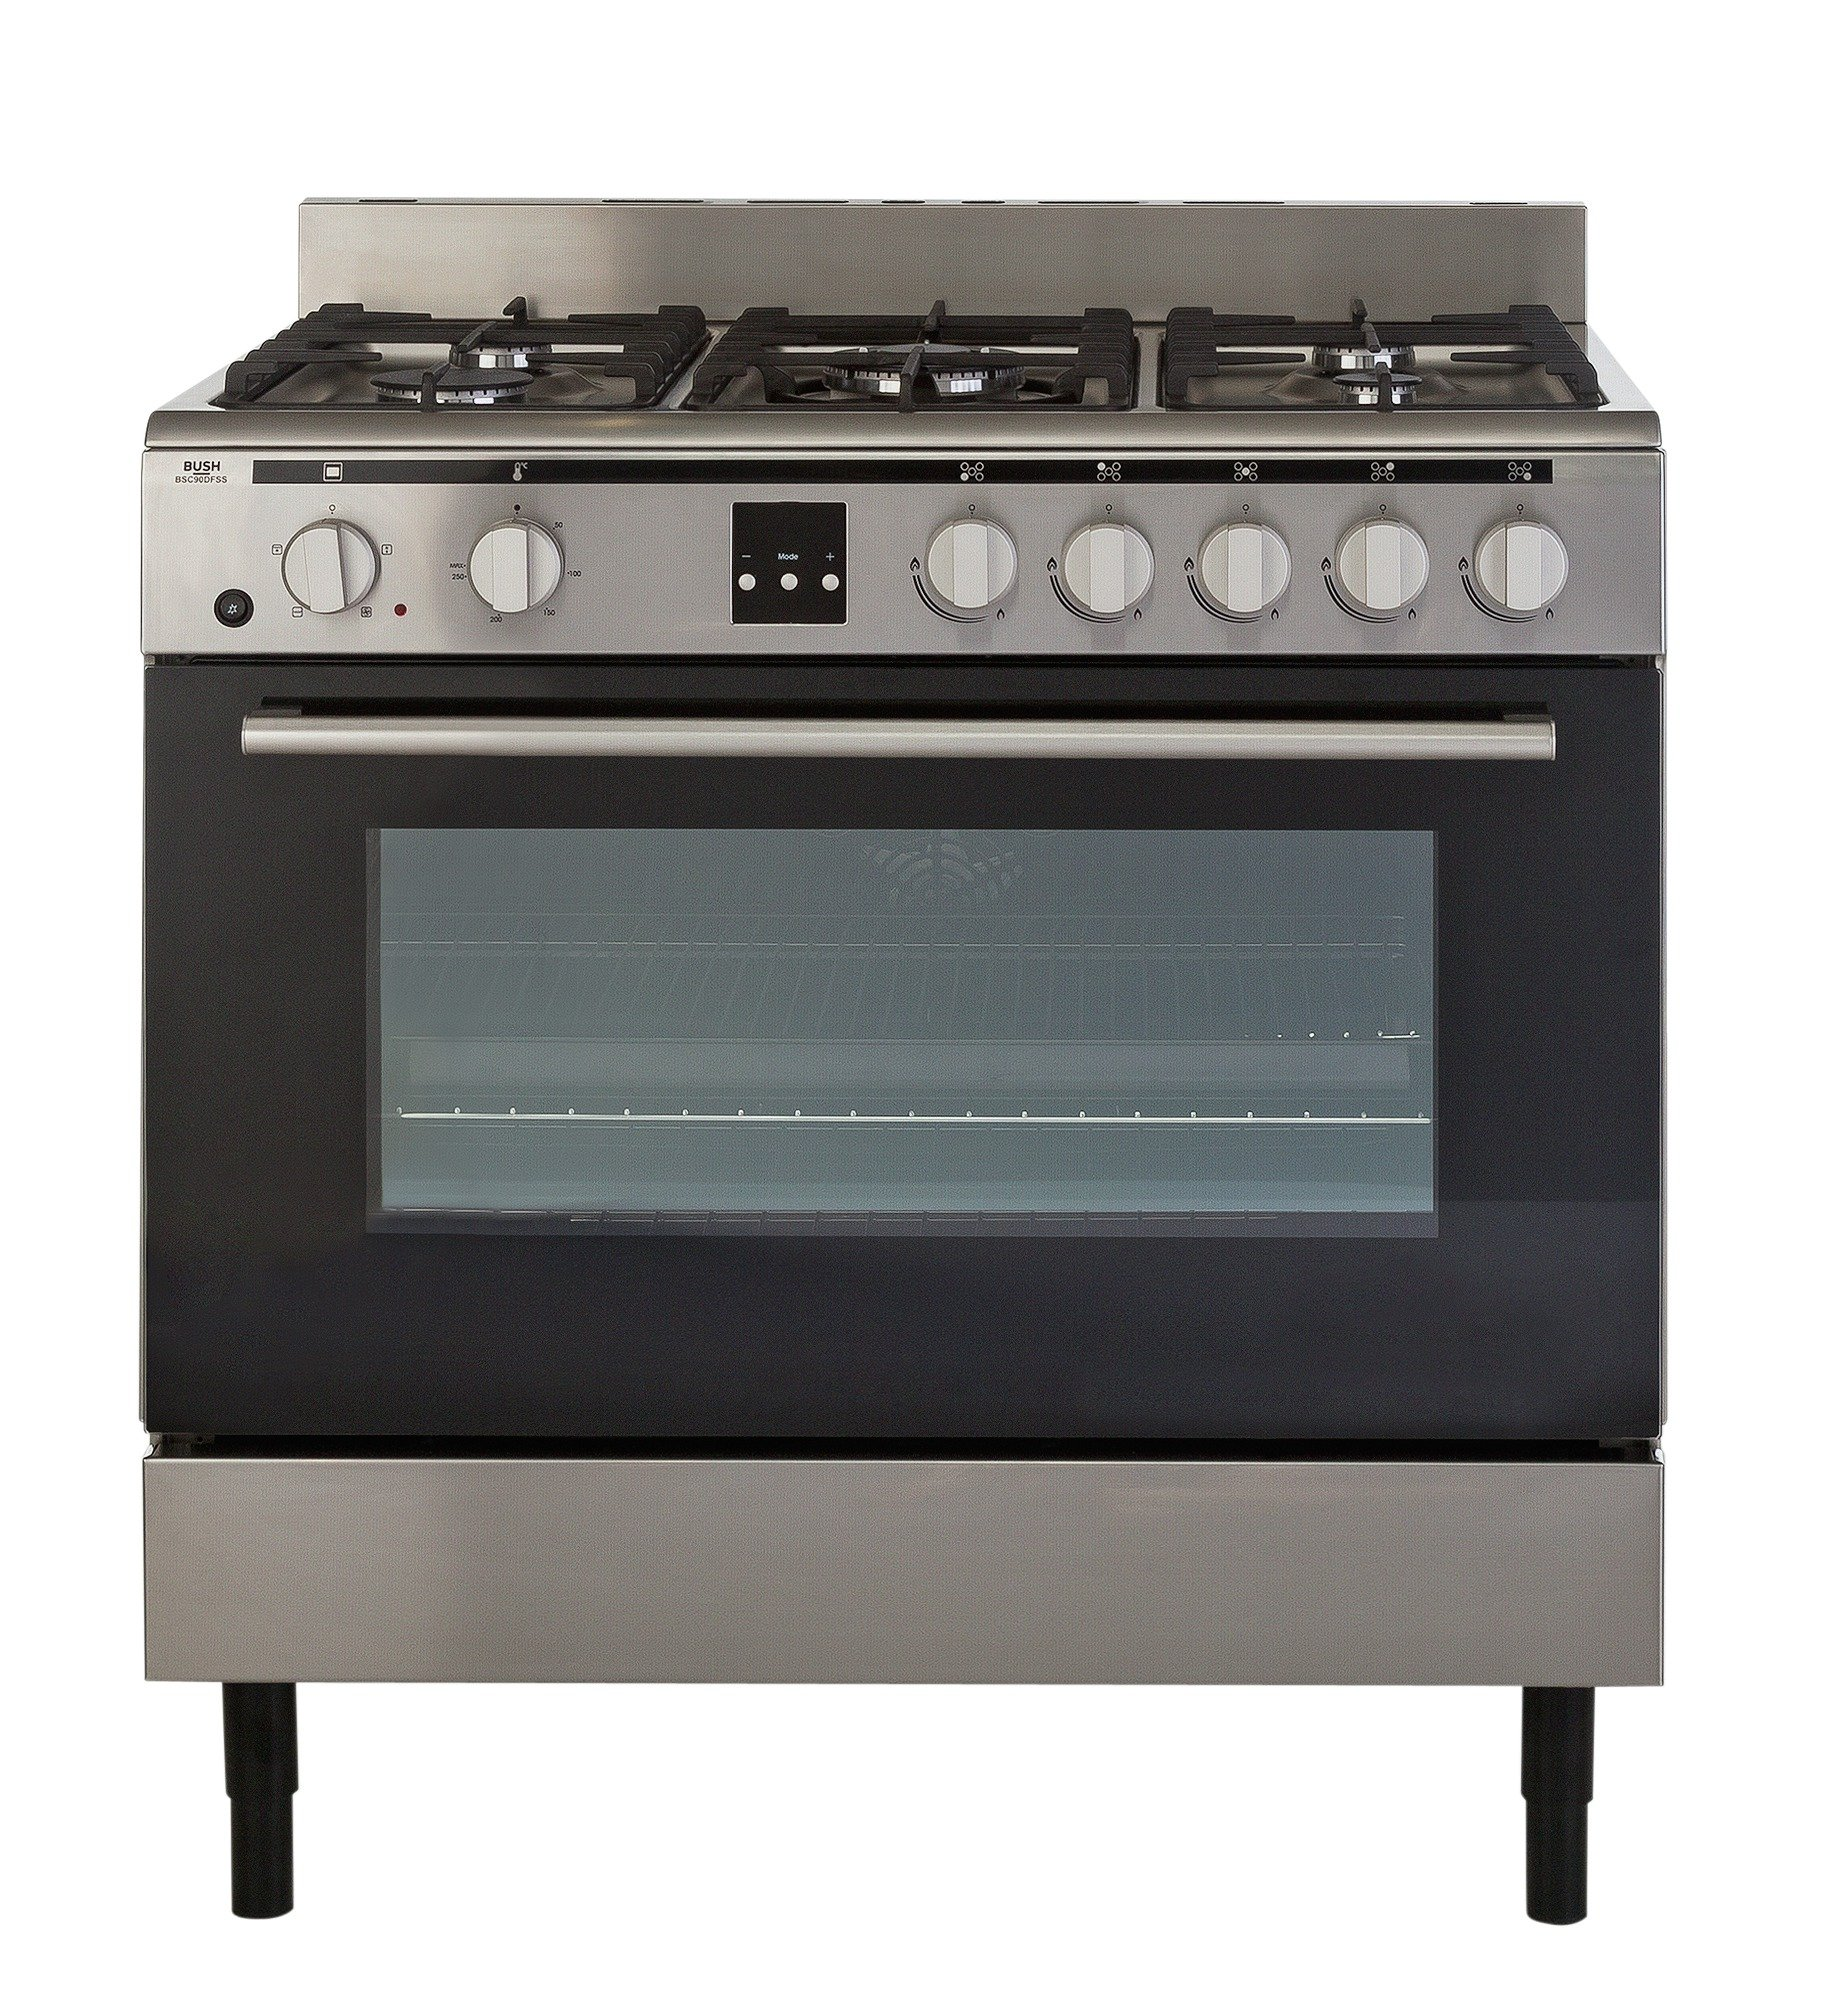 Image of Bush - BSC90DFSS - Dual Fuel Range Cooker - Stainless Steel